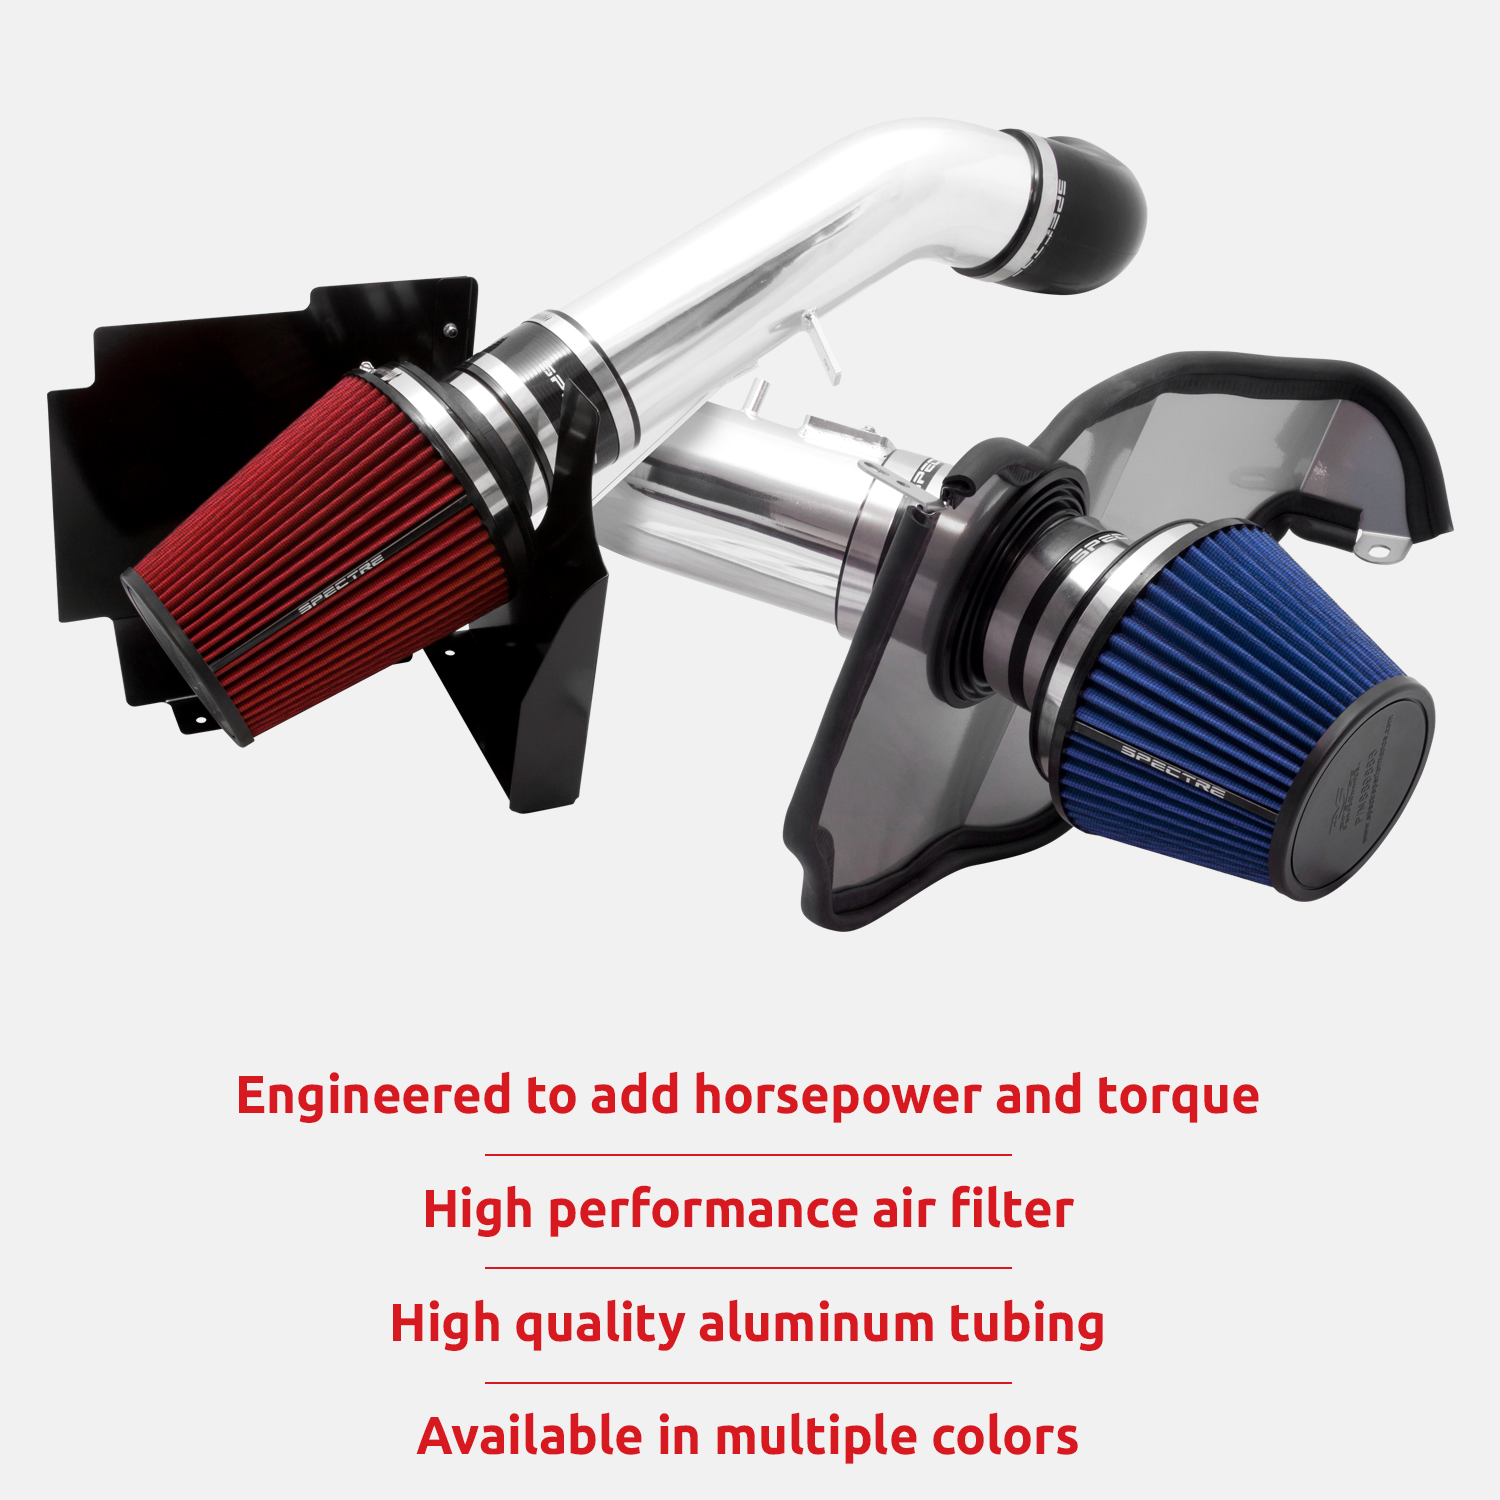 Spectre Performance Air Intake Kit: High Performance Civic SPE-9082 Desgined to Increase Horsepower and Torque: 2012-2015 HONDA